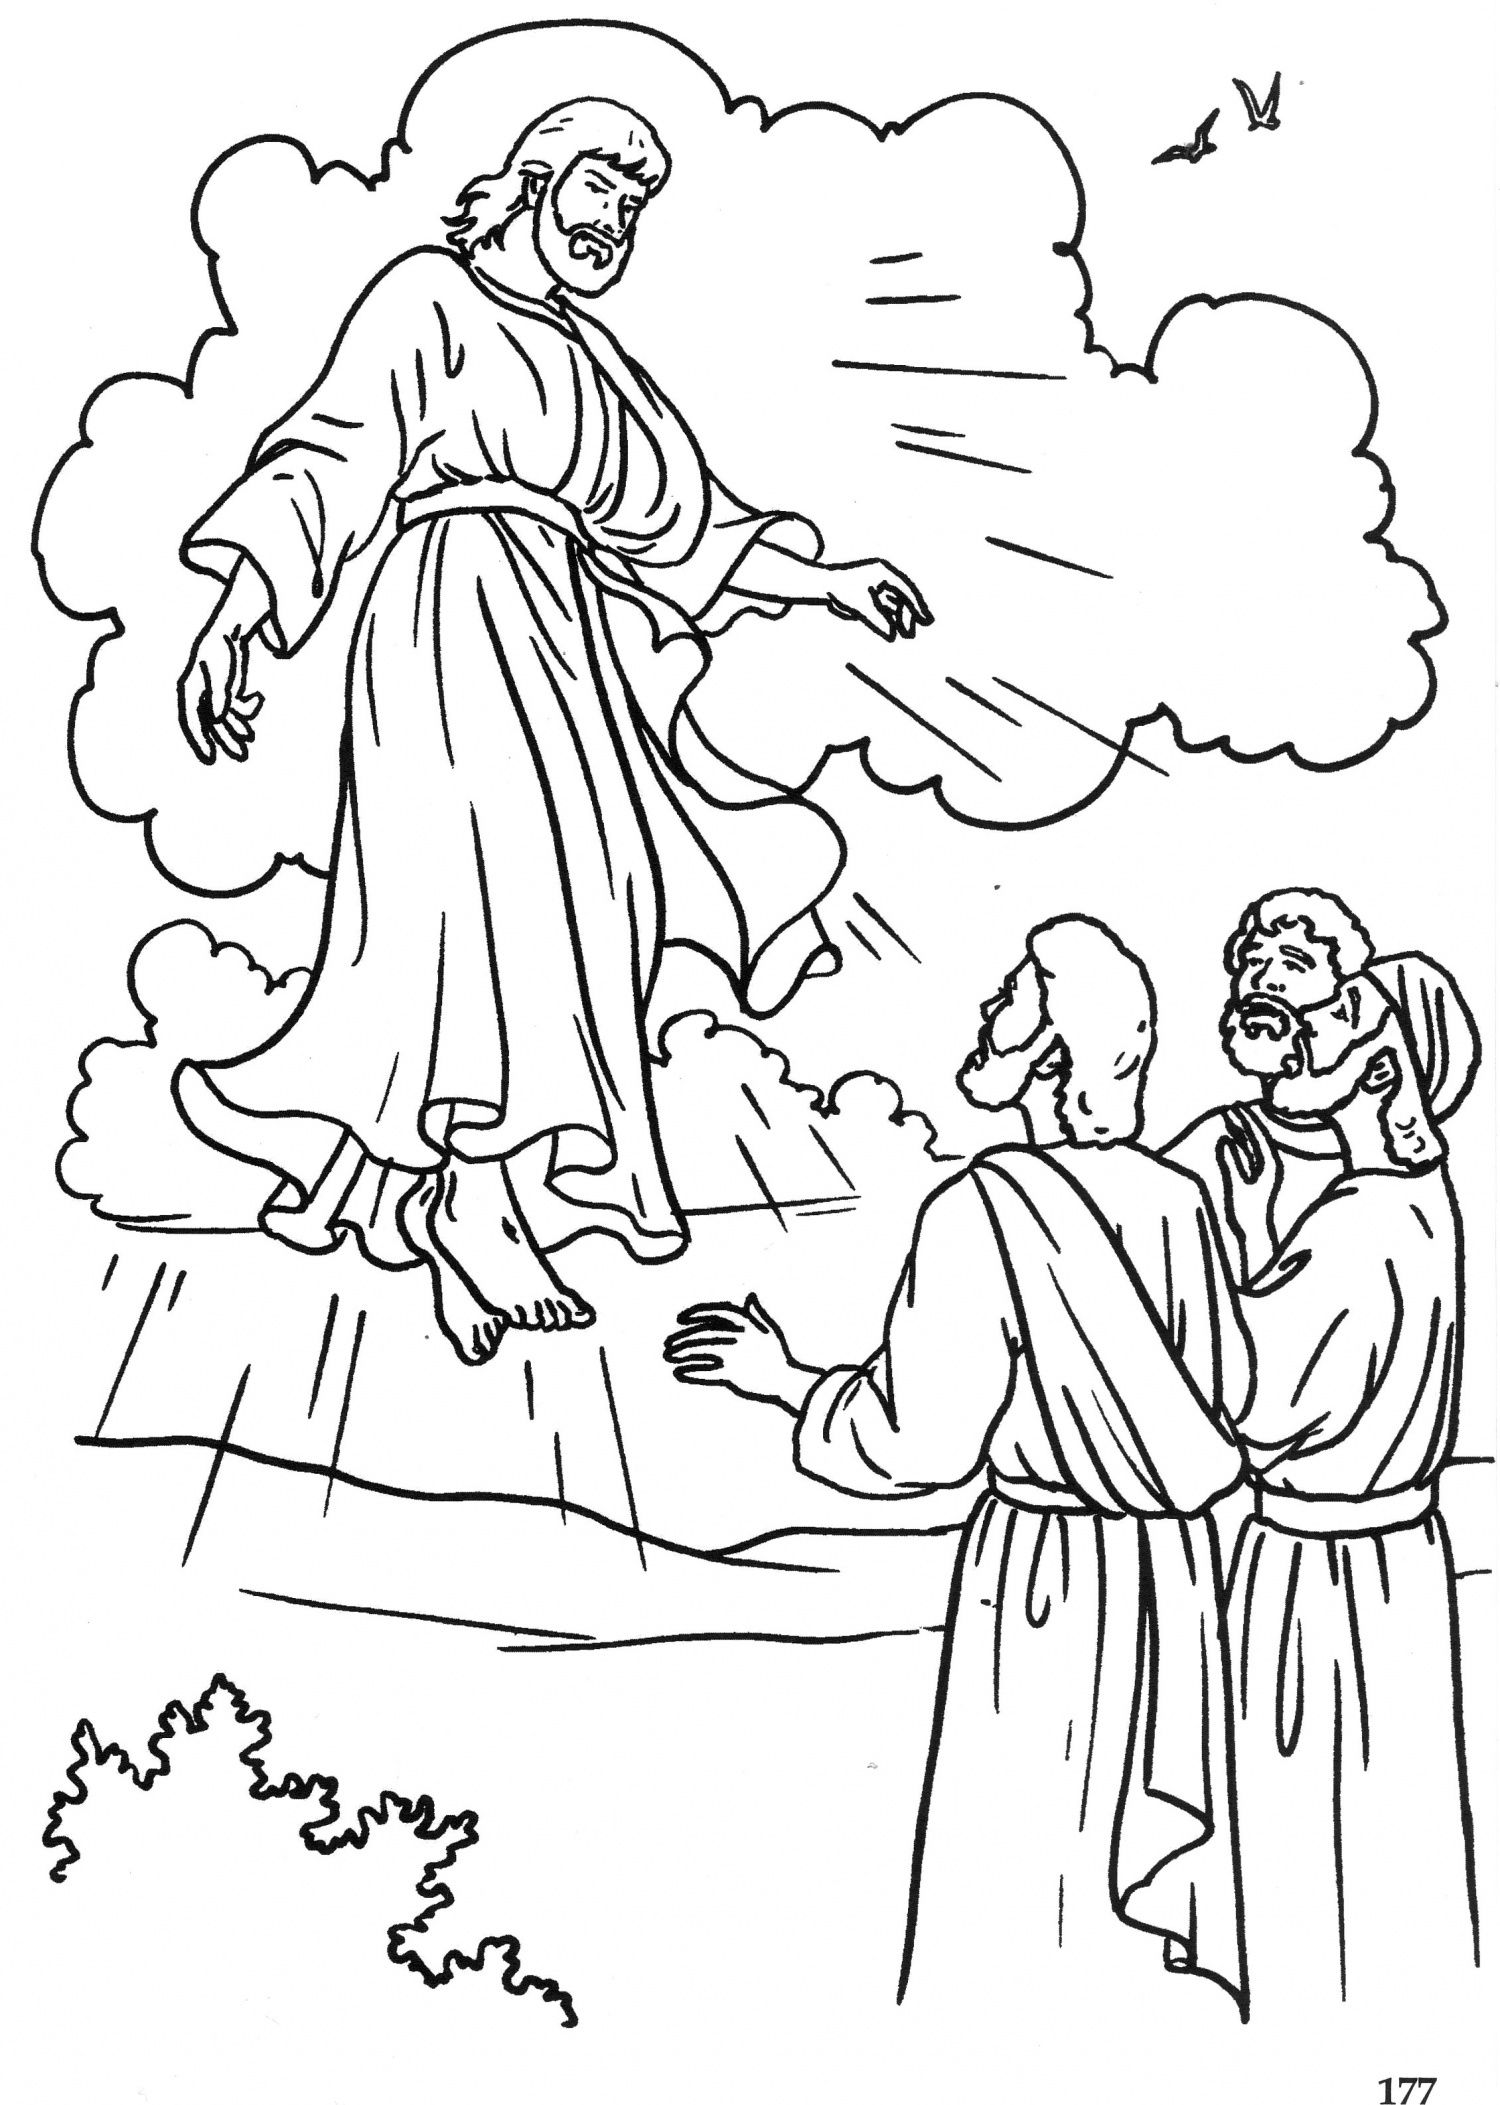 coloring pages ascension of jesus - photo#7